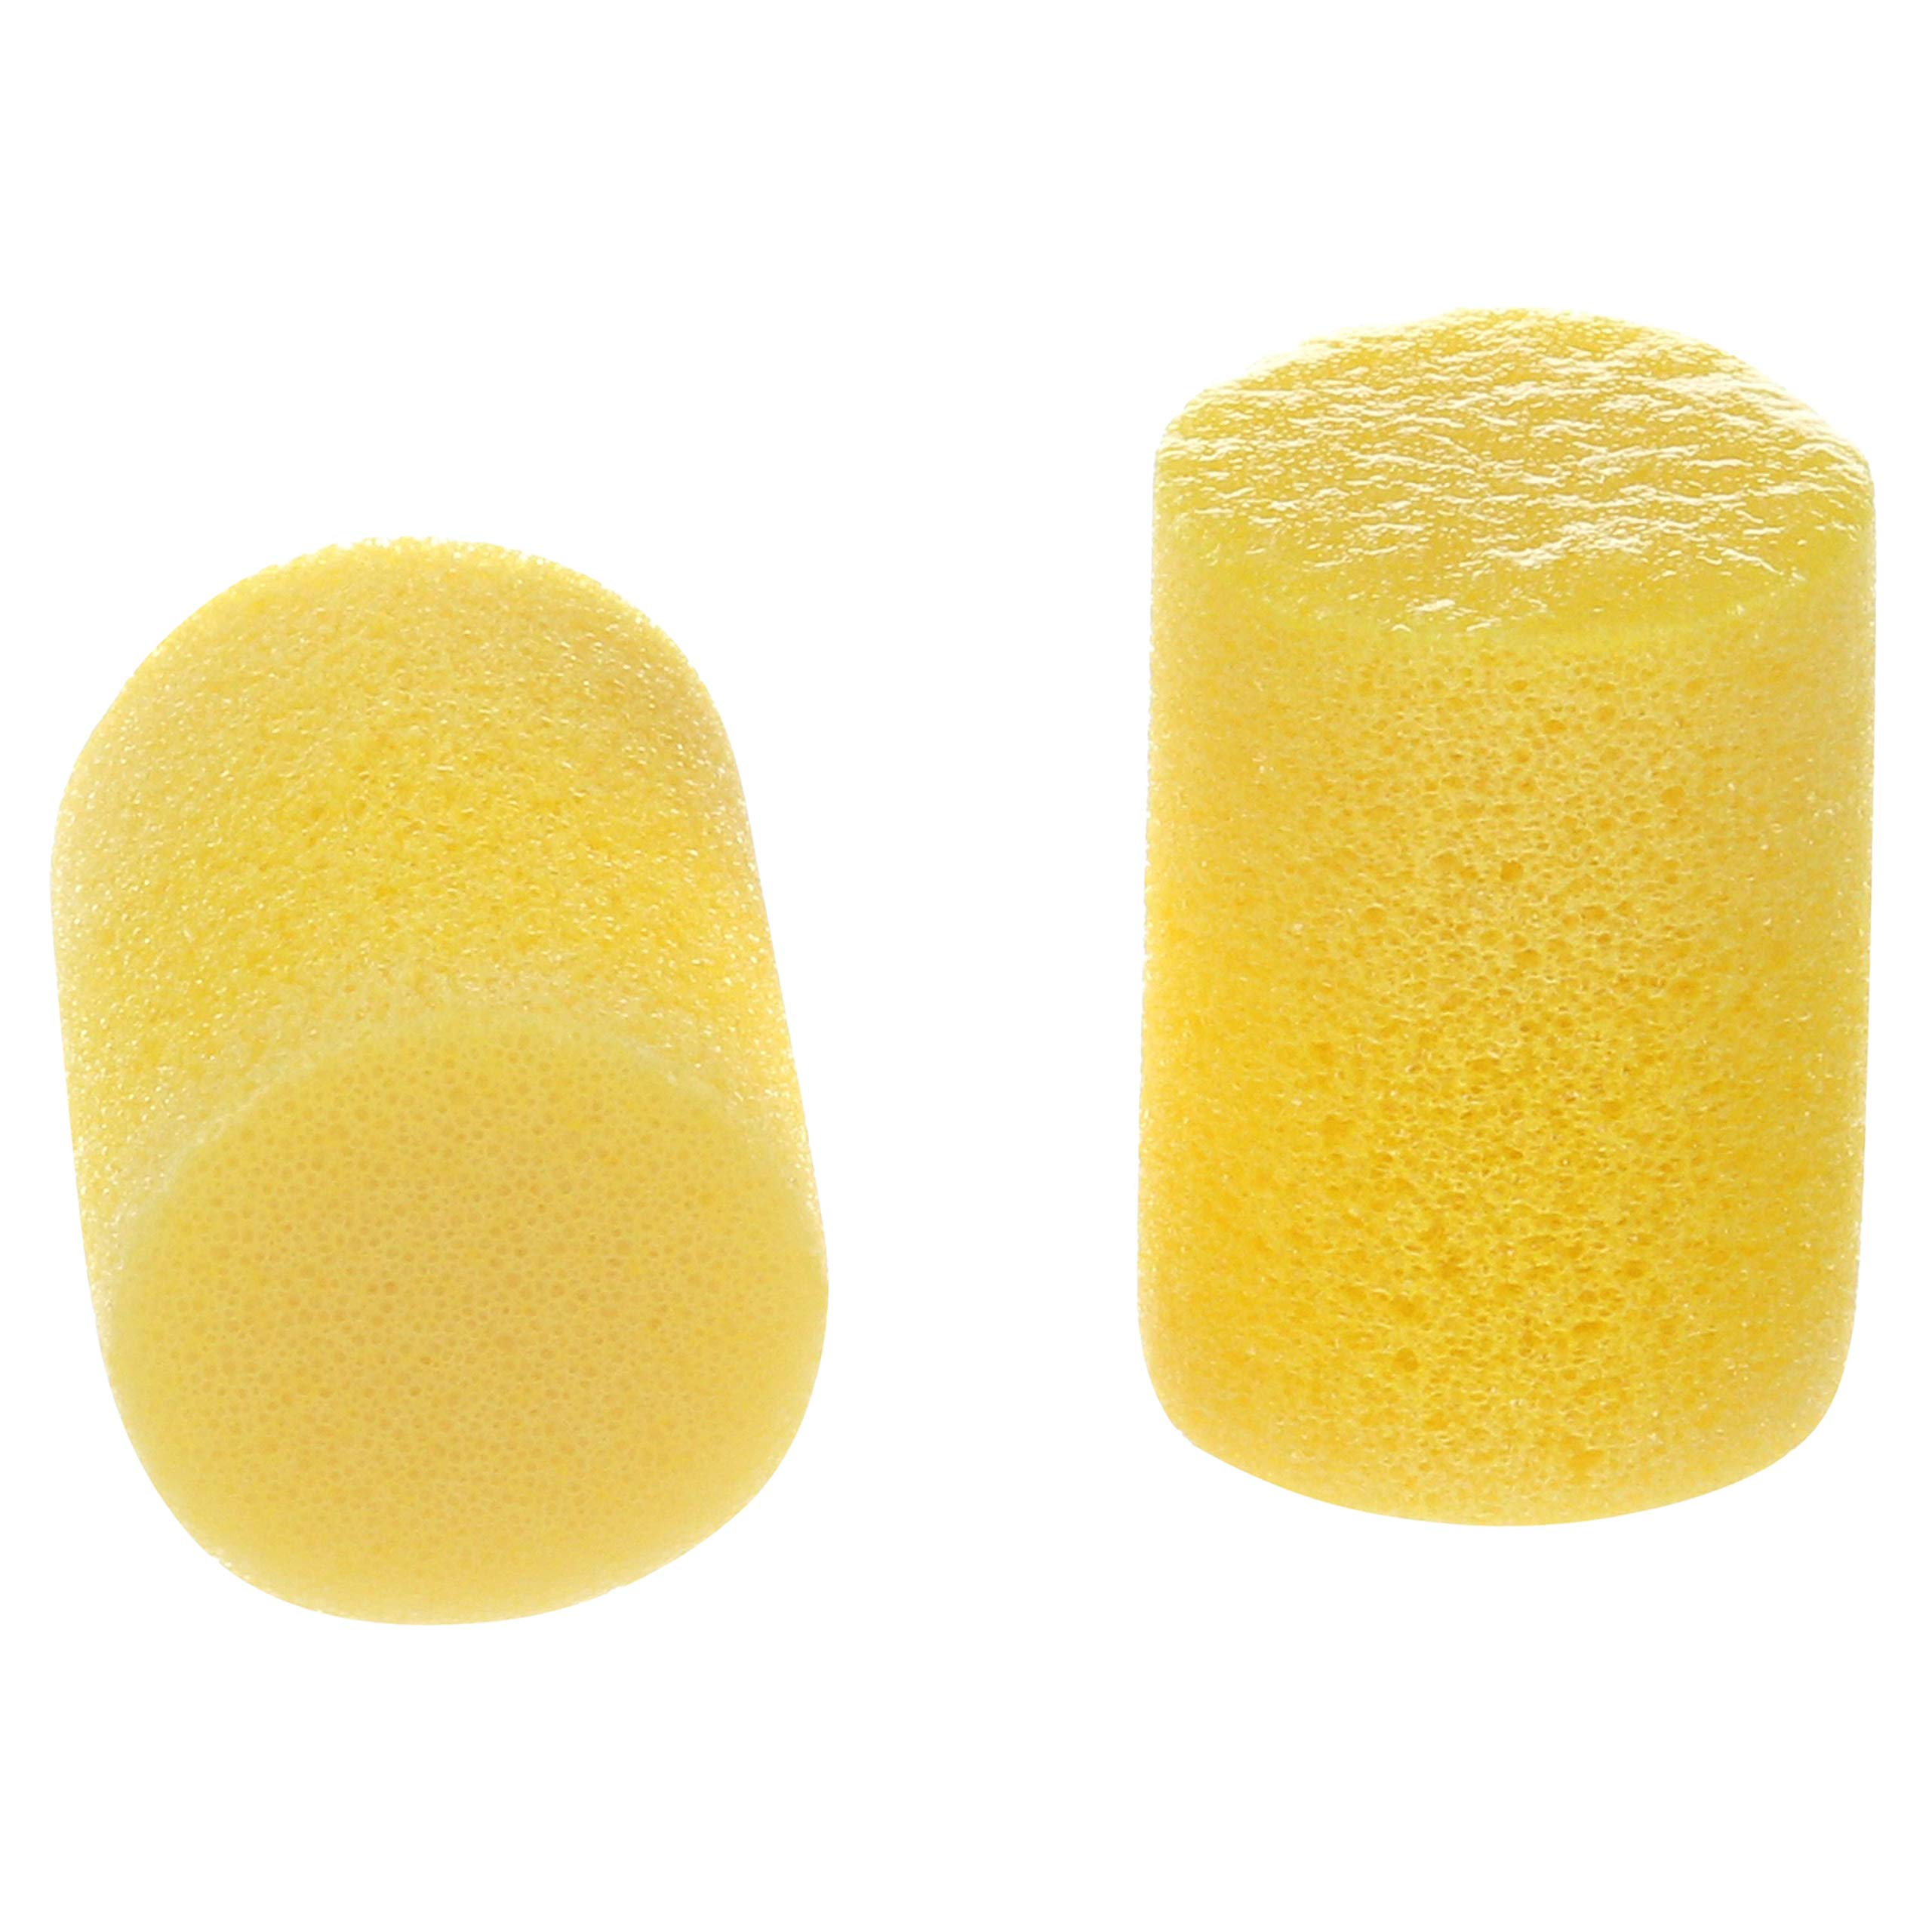 3M E-A-R Classic Uncorded Earplugs, Hearing Conservation 312-1201 in Poly Bag, 200 pairs by 3M Personal Protective Equipment